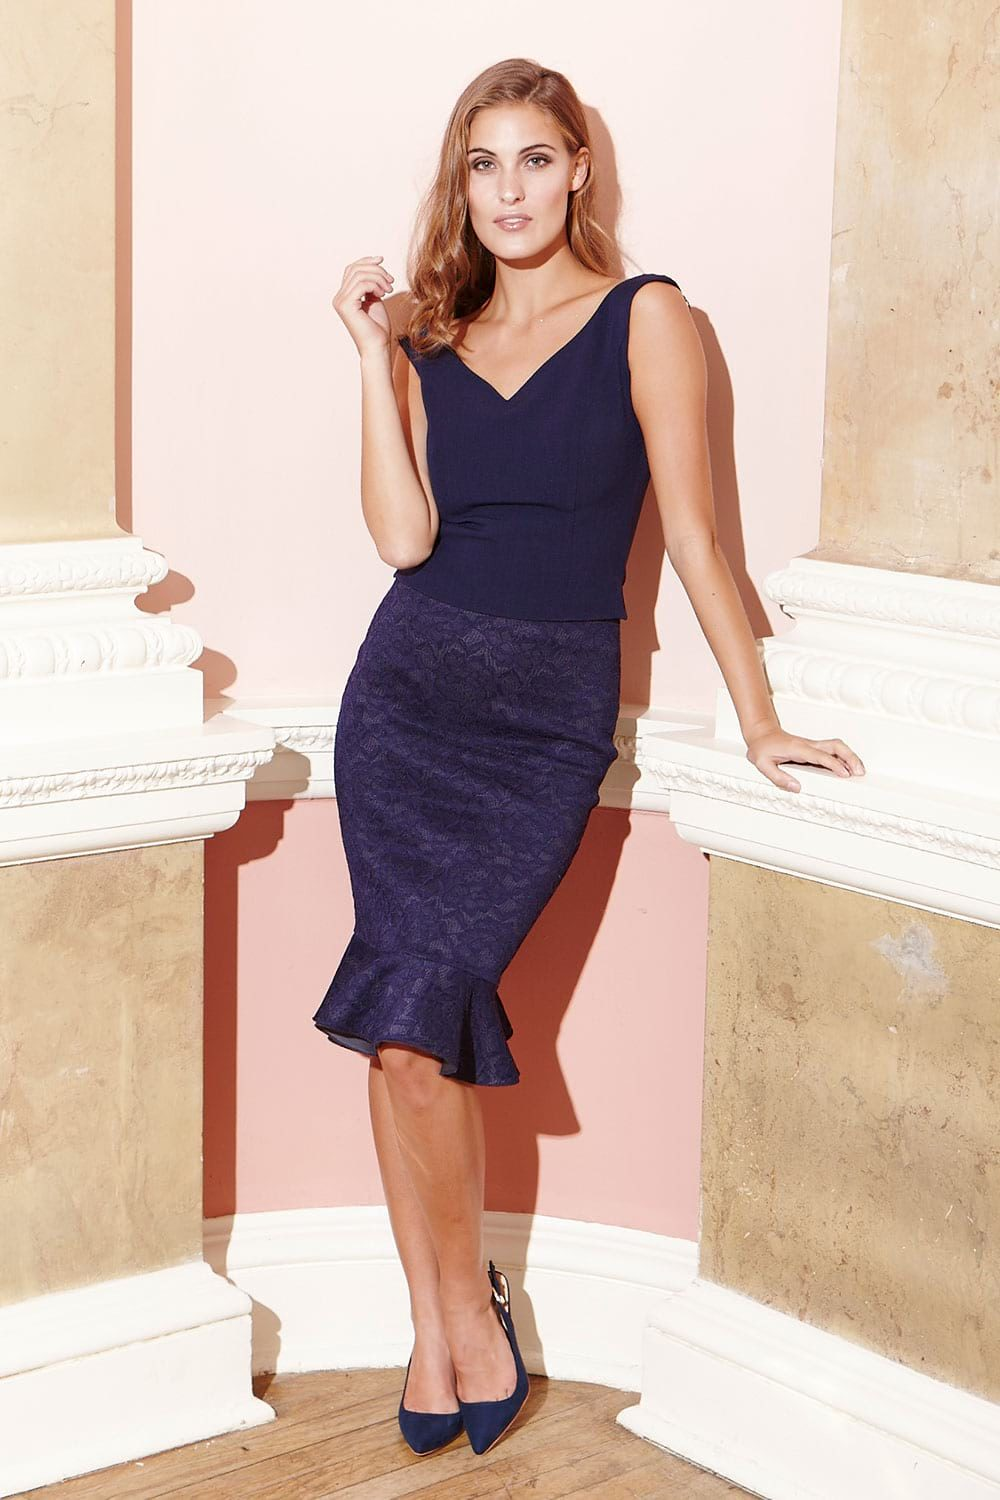 Hybrid Miranda 1178 Navy Top and Claire 1185 Ruffle Skirt